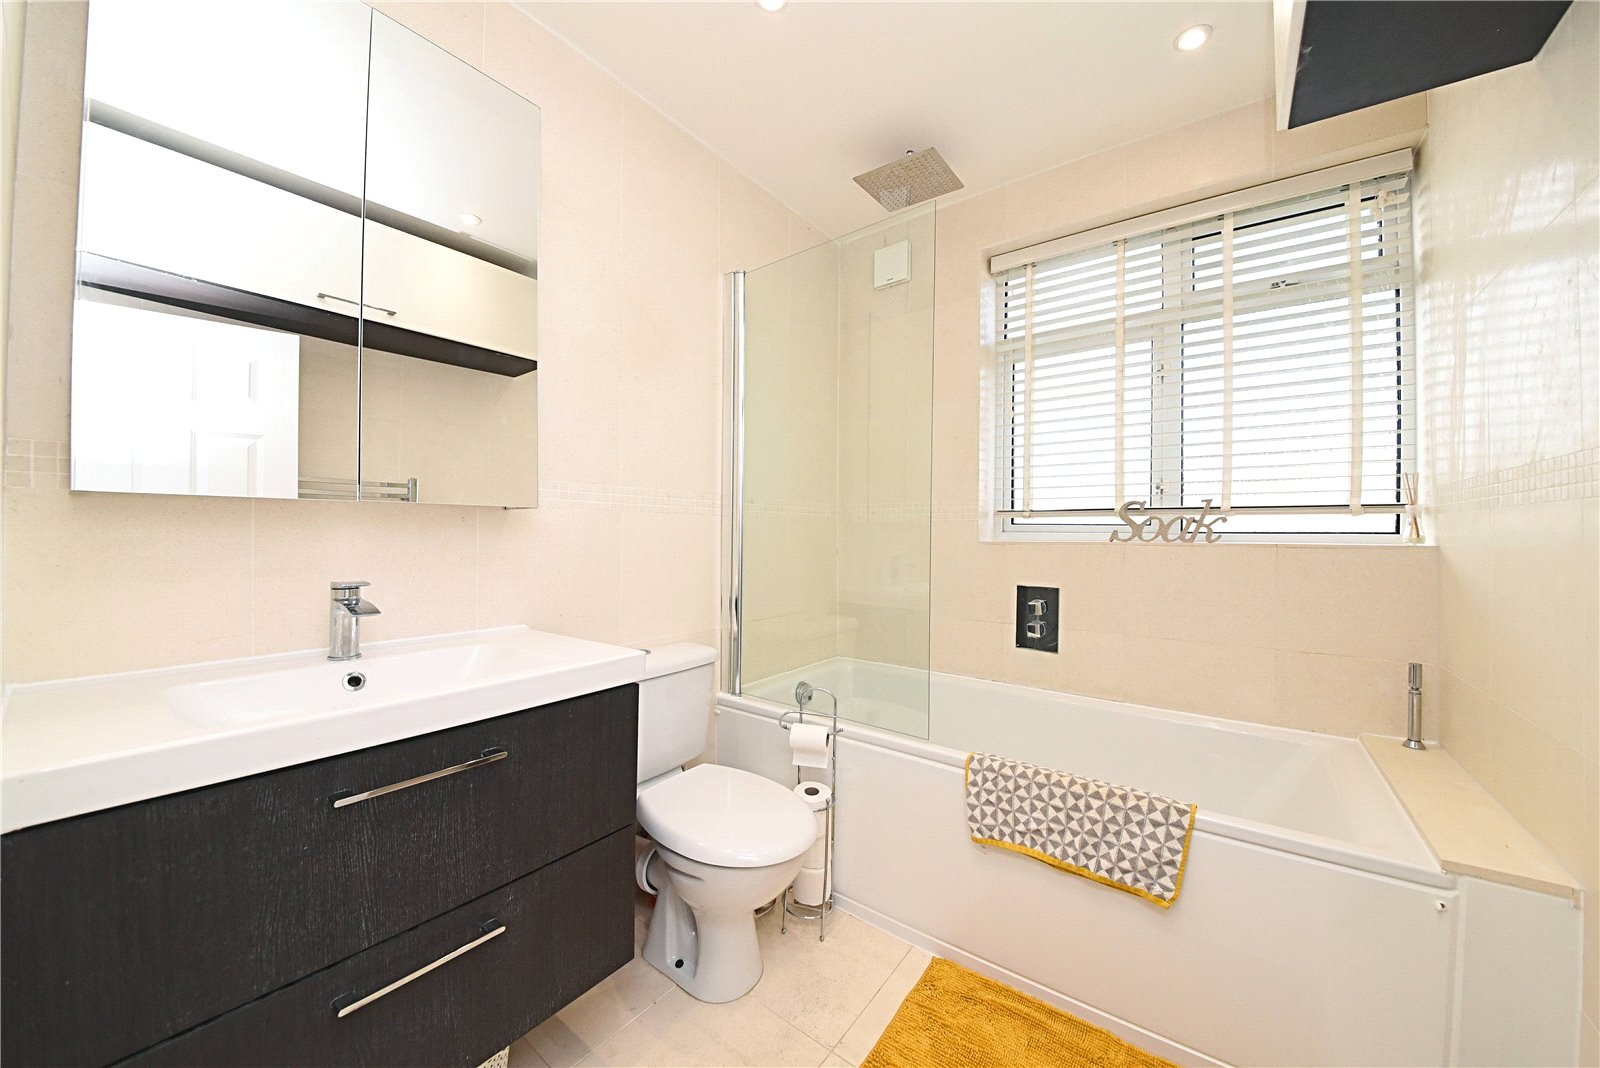 4 bed house for sale in Friern Barnet, N11 1HN 9